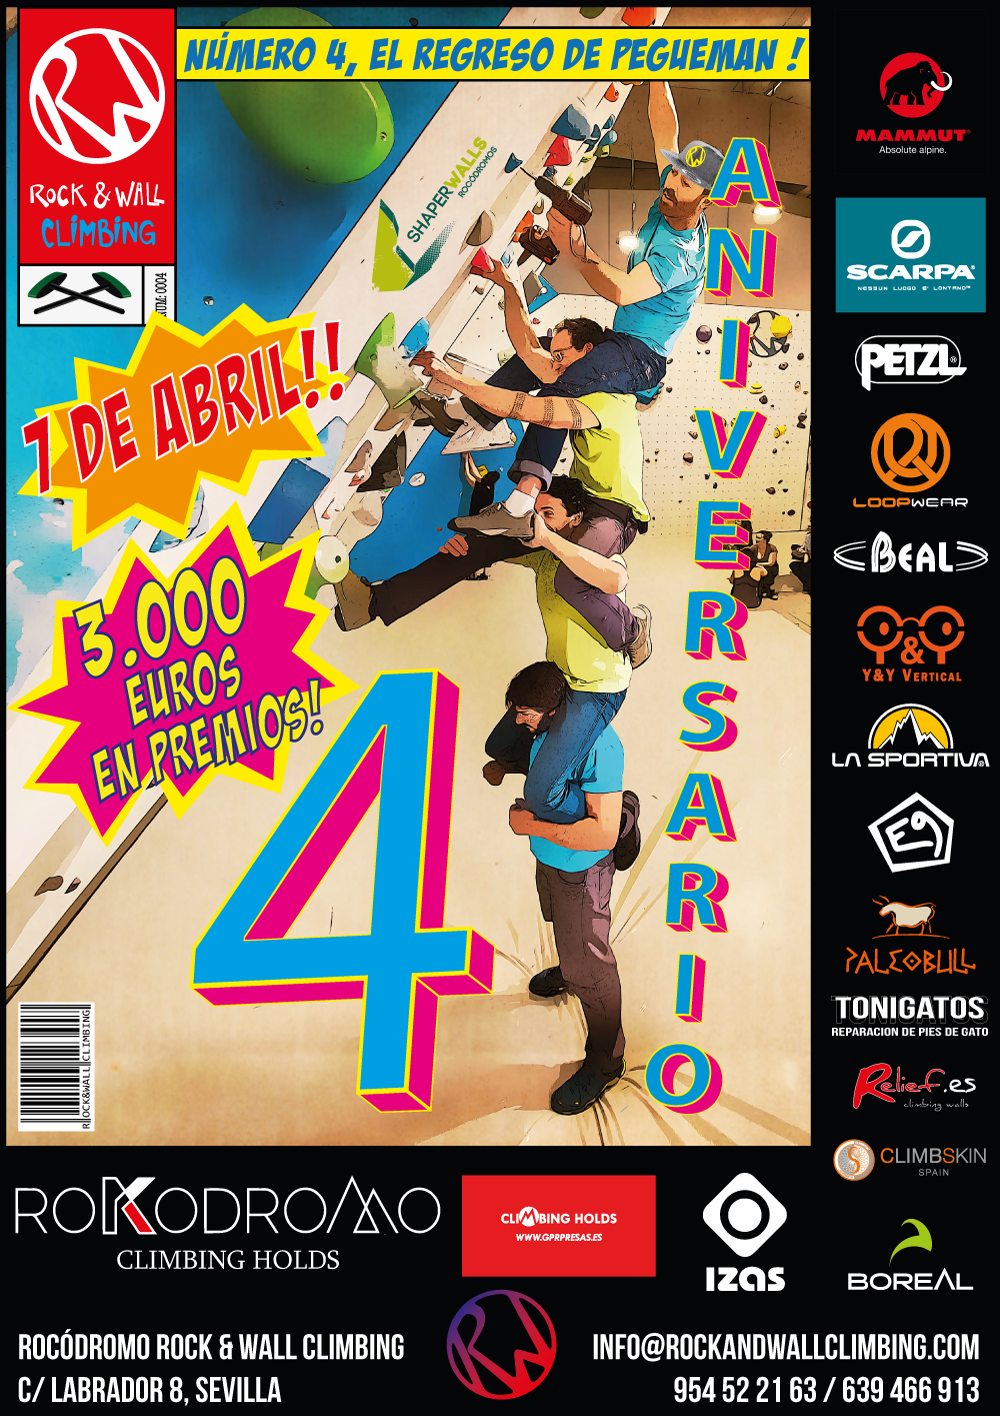 4 aniversario rock & wall